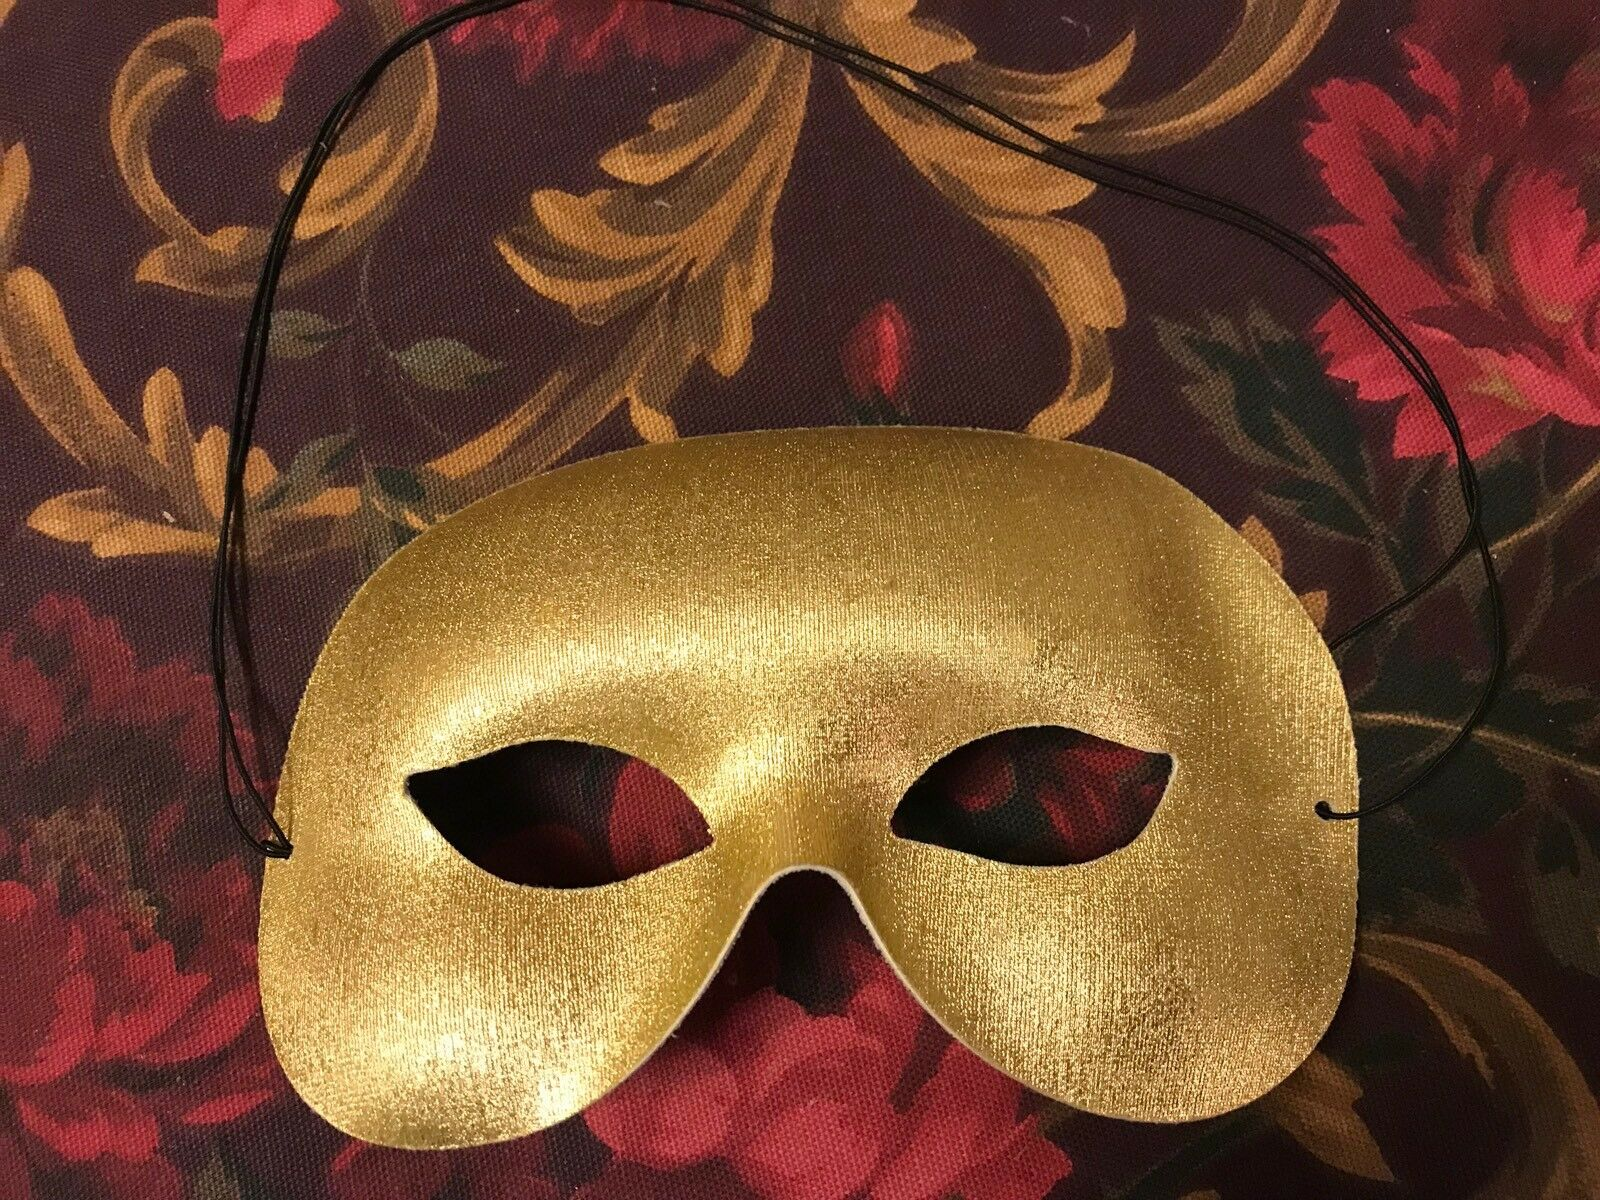 Newman/'s Commedia Mask Company/'s Handmade Leather Feathered Crow  Raven Theater  Masquerade  Fantasy  Renaissance Fair Half Face Mask